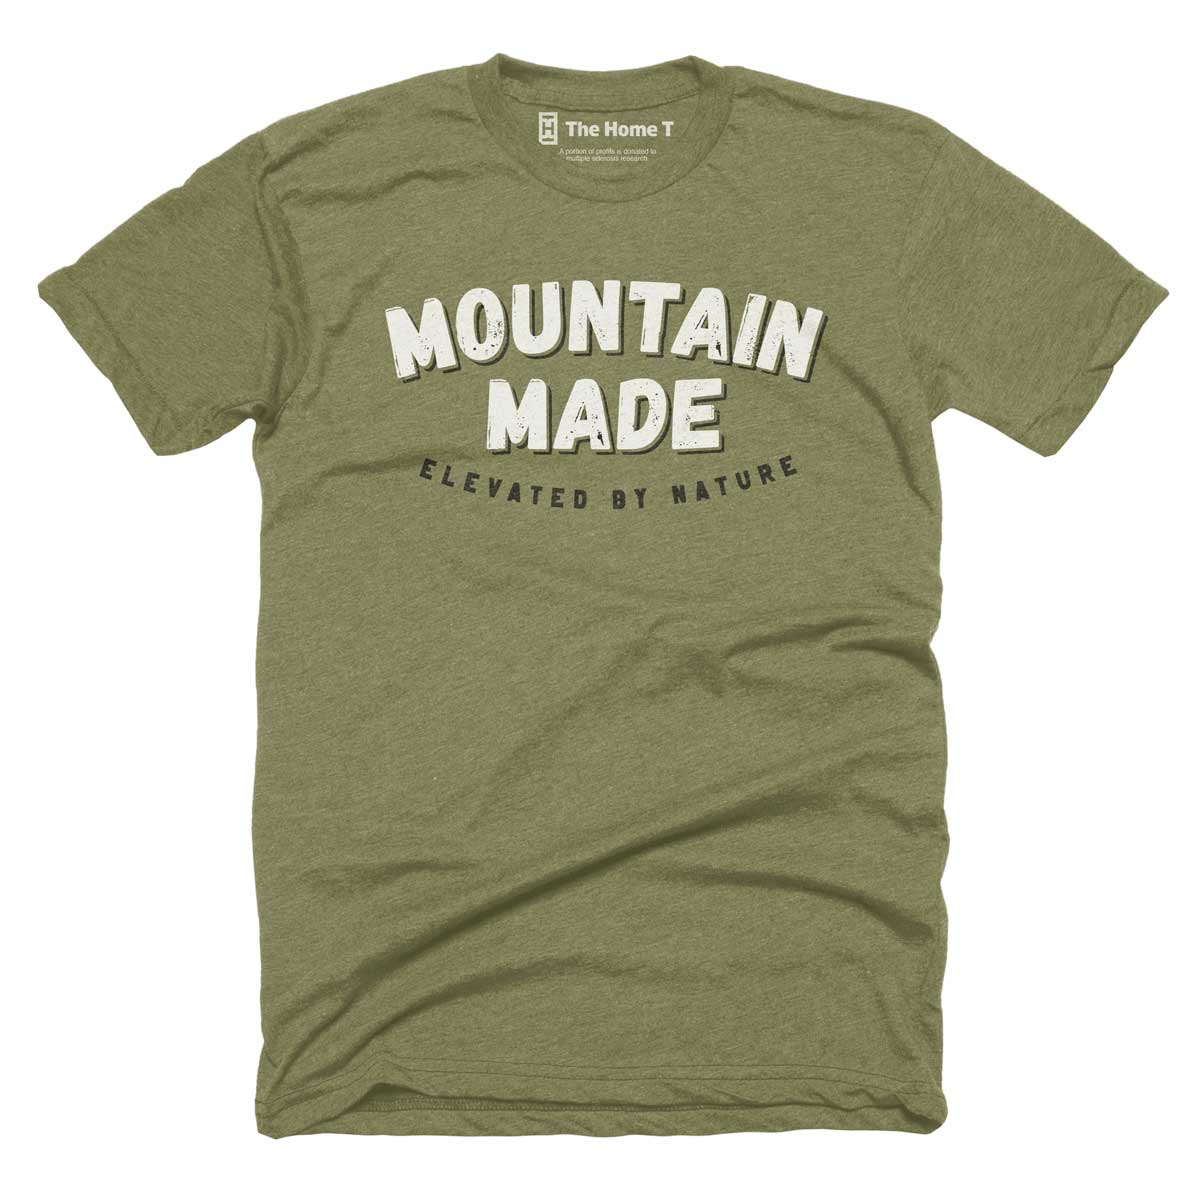 Mountain Made. Elevated by nature. Navy Crew.